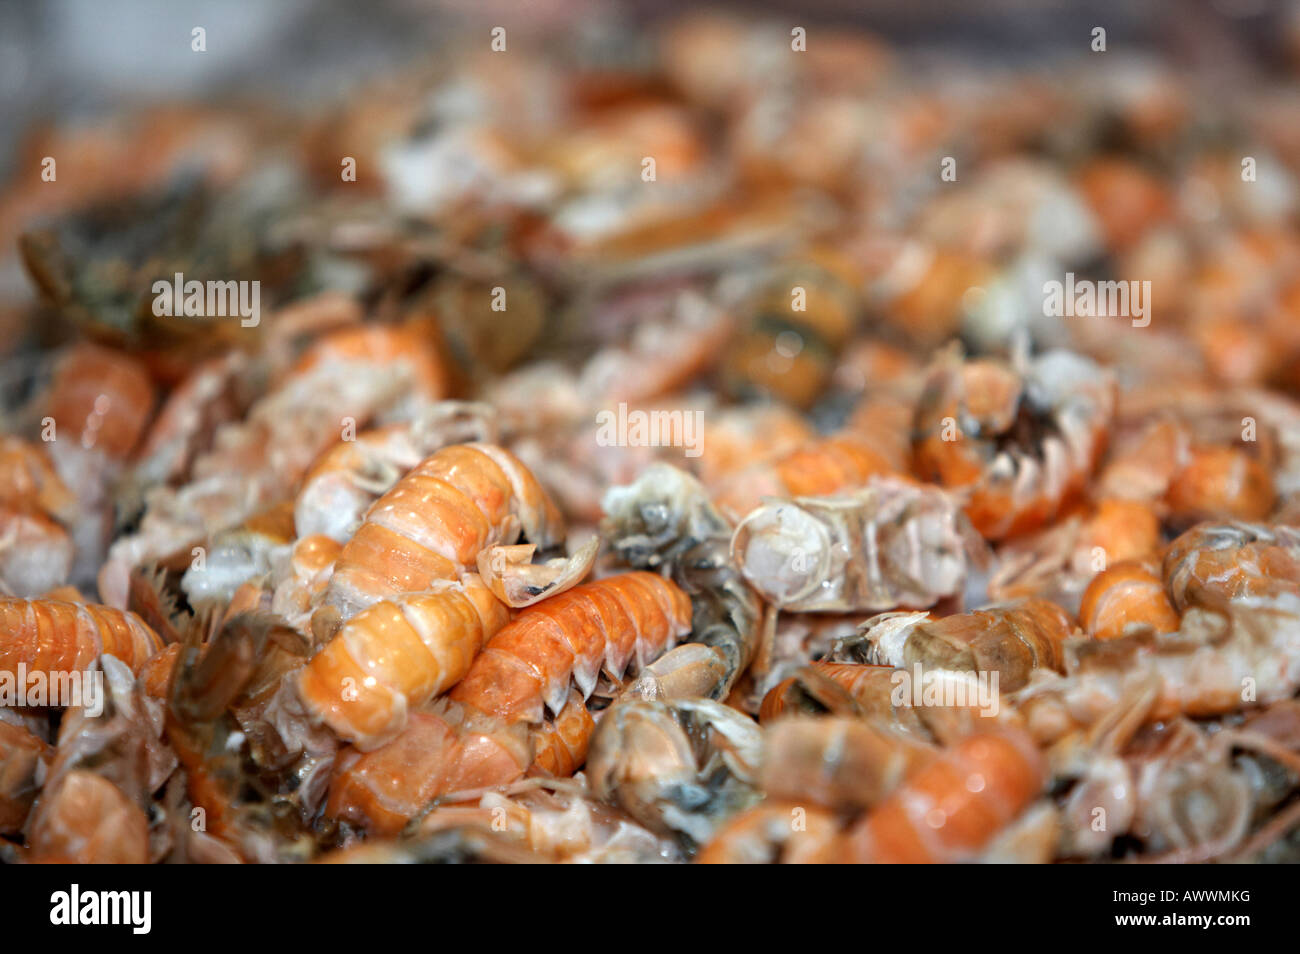 pile of prawn tails on a fishmongers fresh fish stall at an indoor market - Stock Image